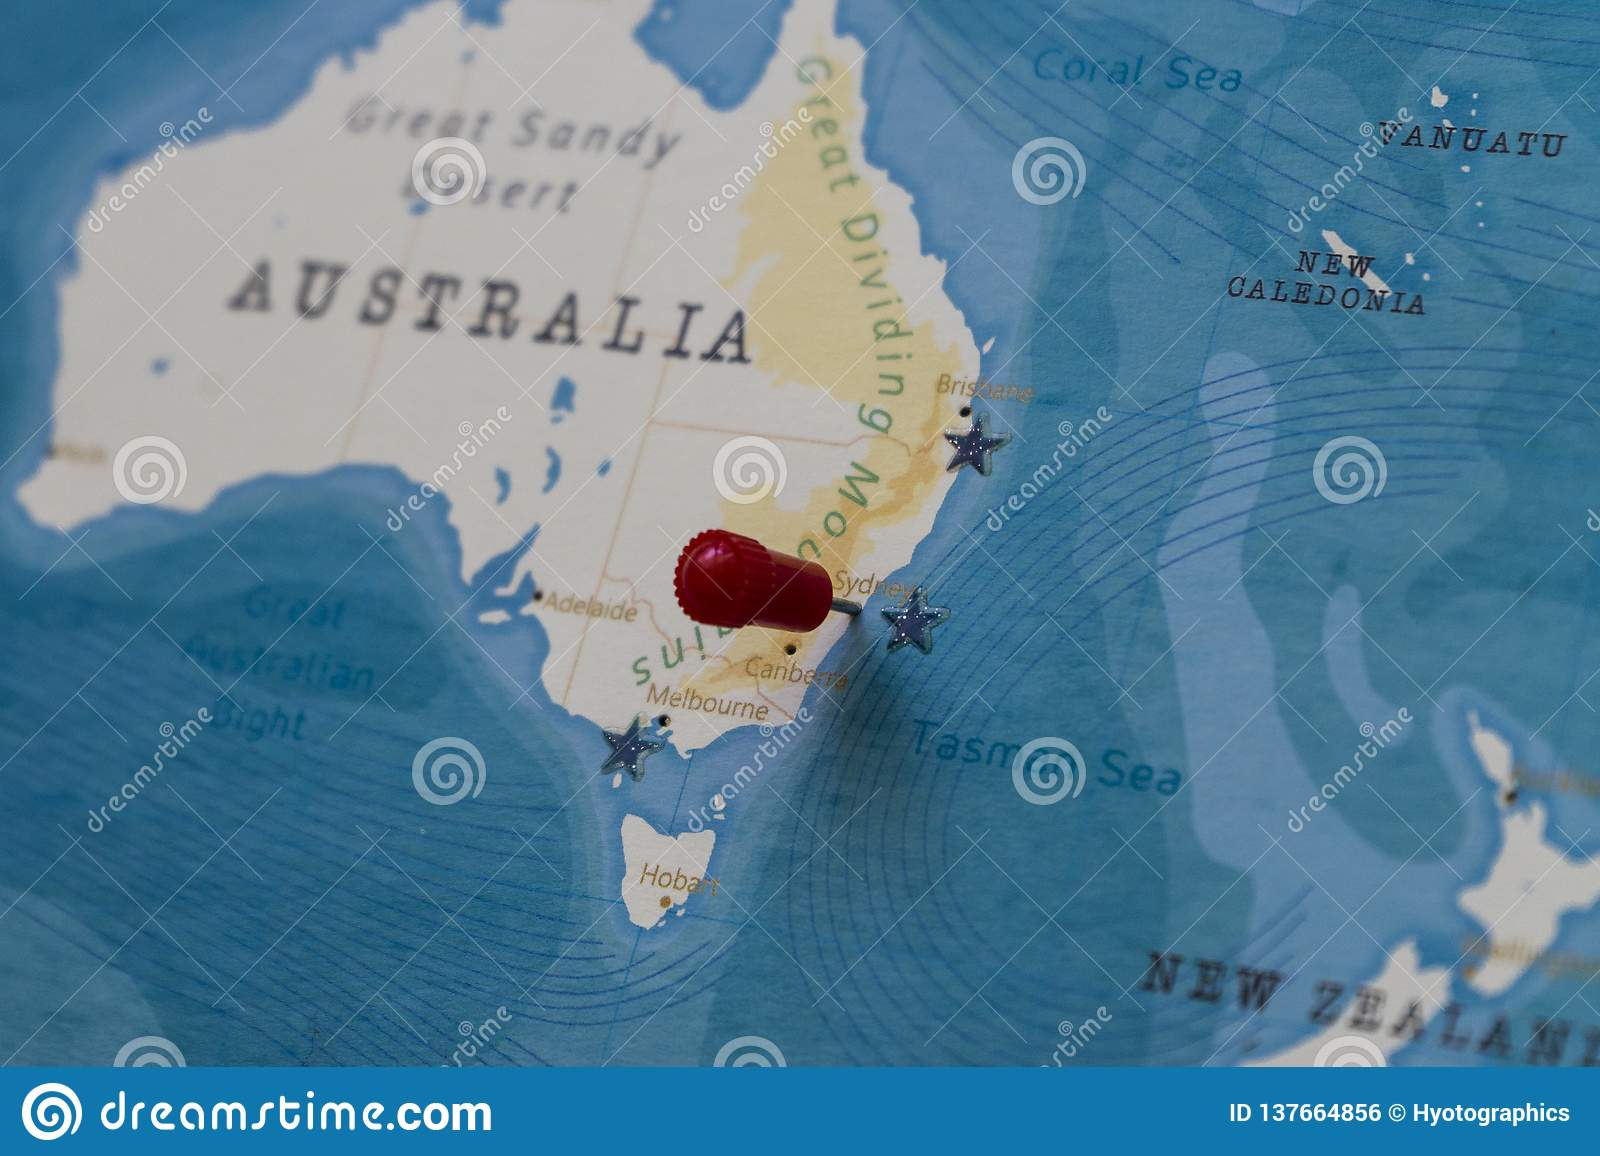 Sydney Australia World Map.A Pin On Sydney Australia In The World Map Stock Photo Image Of